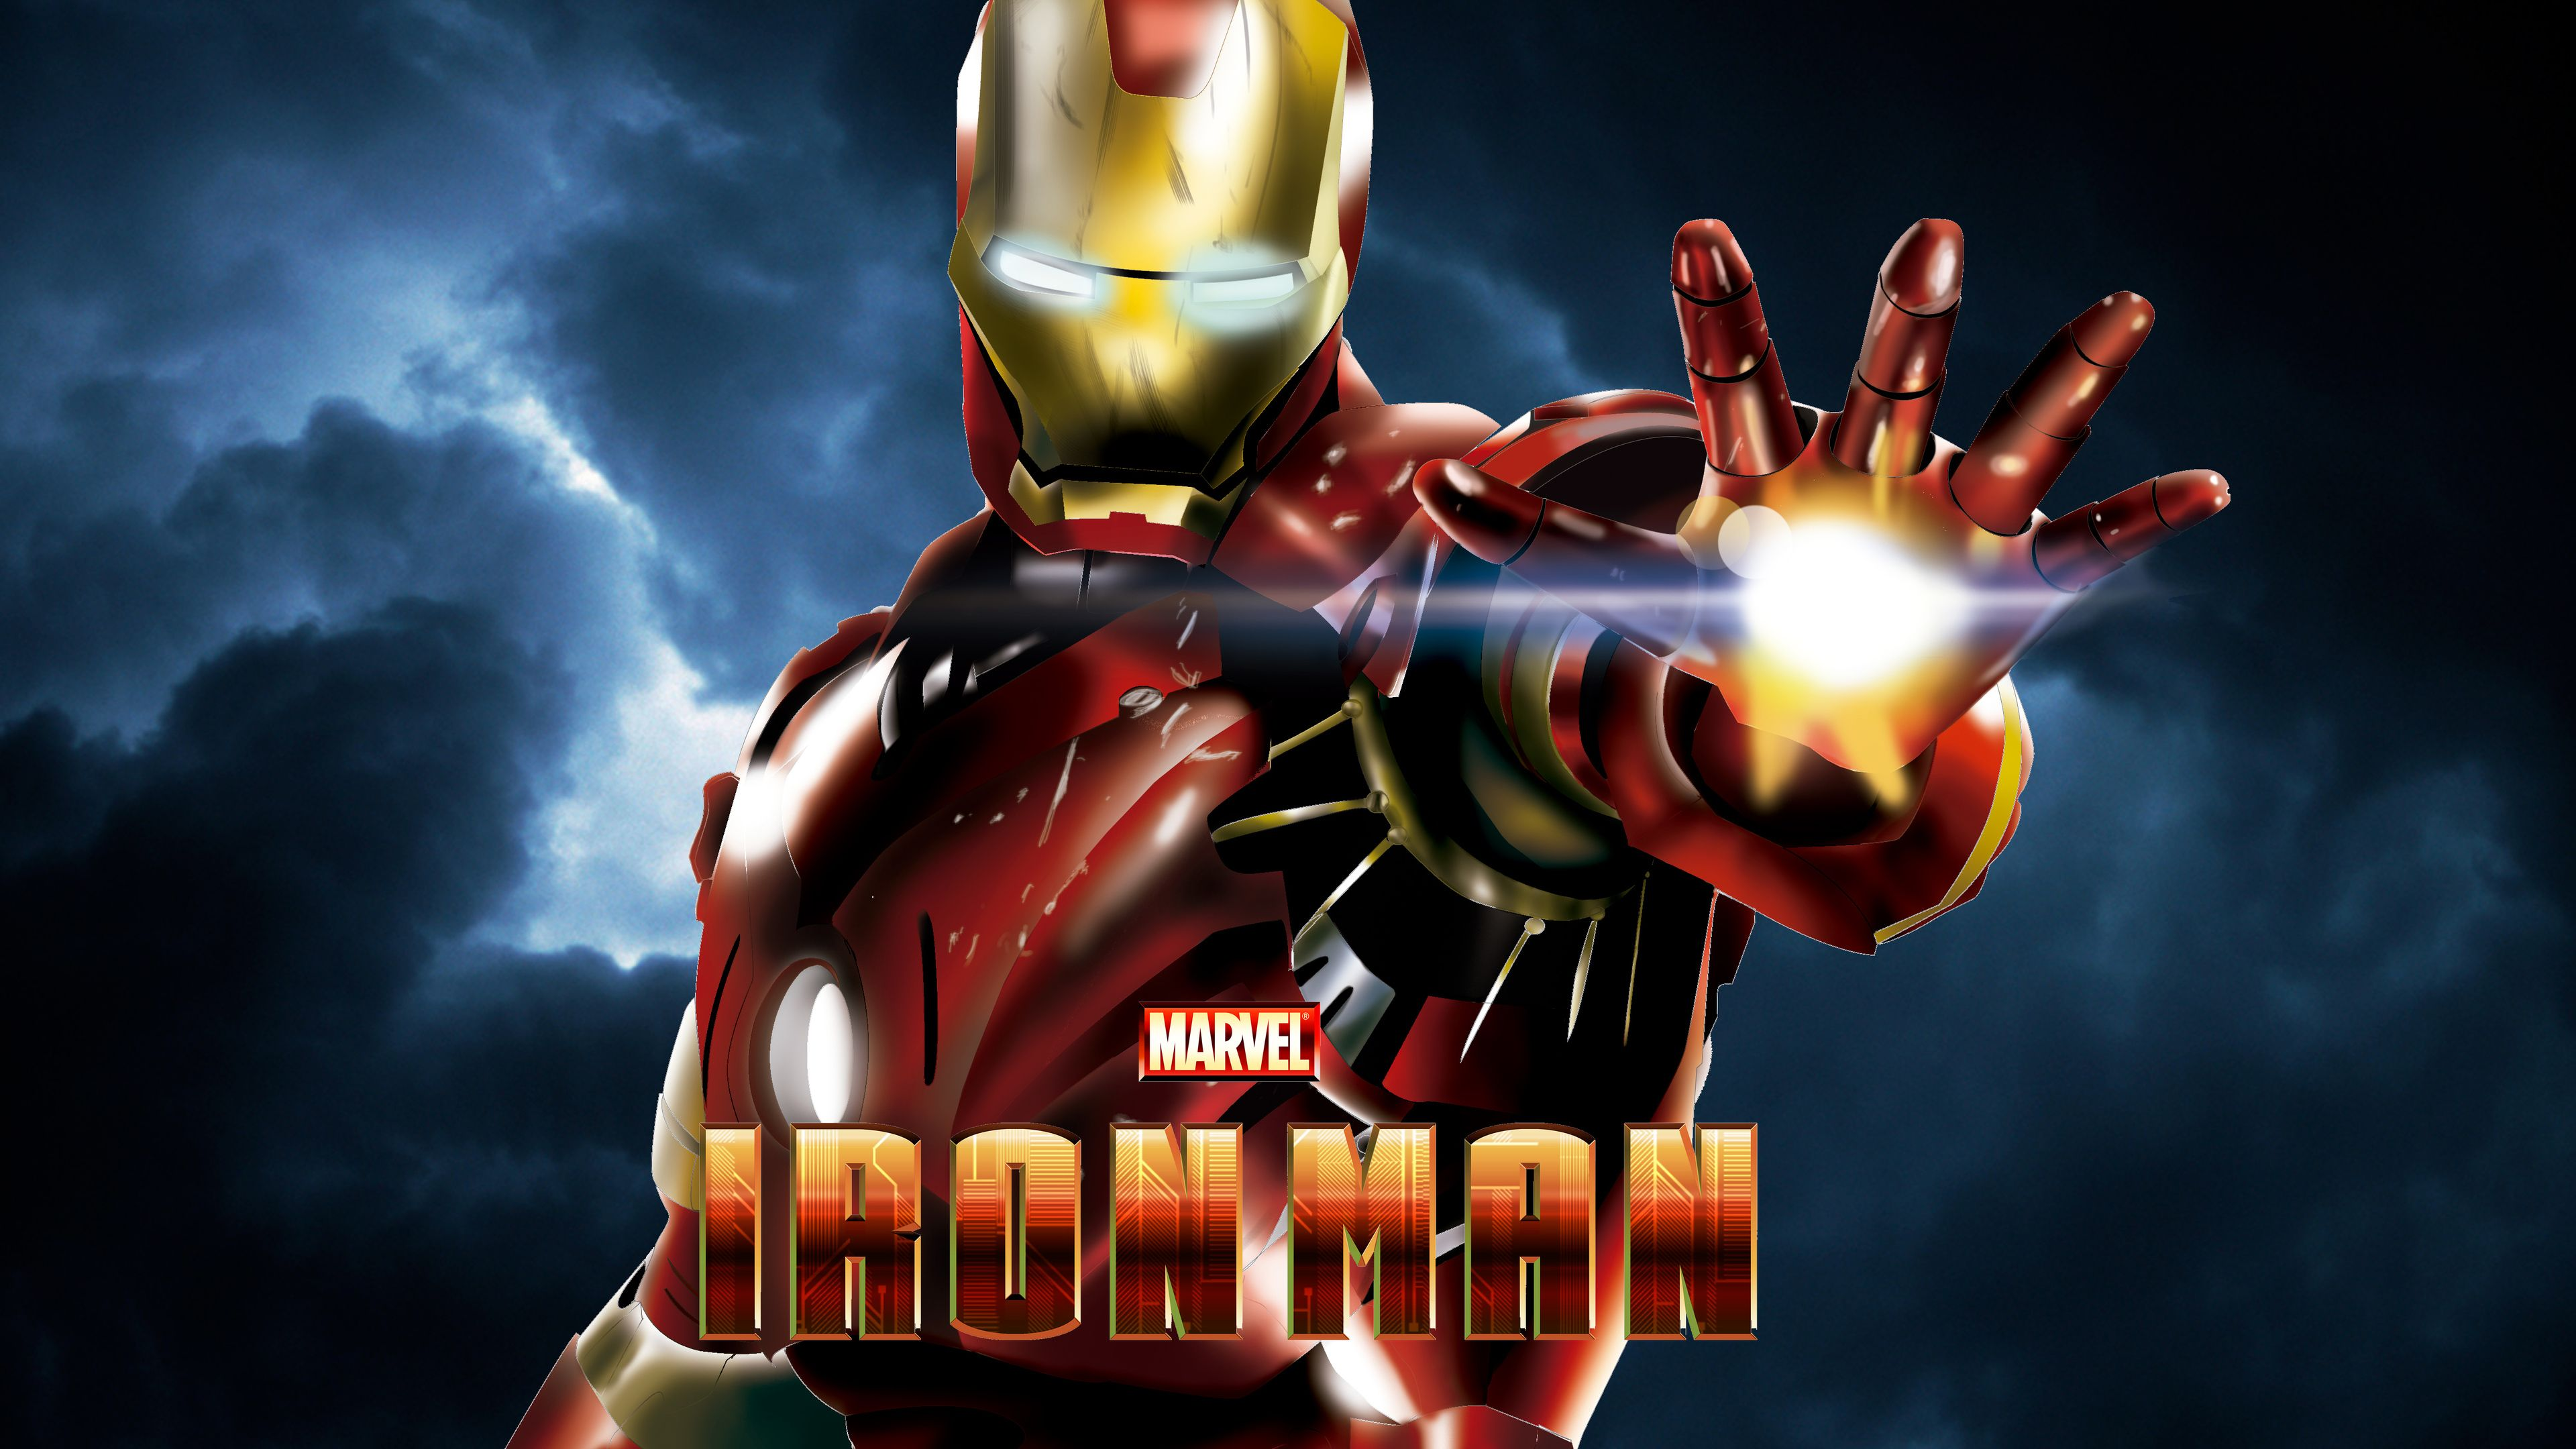 Iron Man Marvel 4k Superheroes Wallpapers Iron Man Wallpapers Hd Wallpapers Deviantart Wallpapers Artist Wallpape Iron Man Iron Man Wallpaper Man Wallpaper